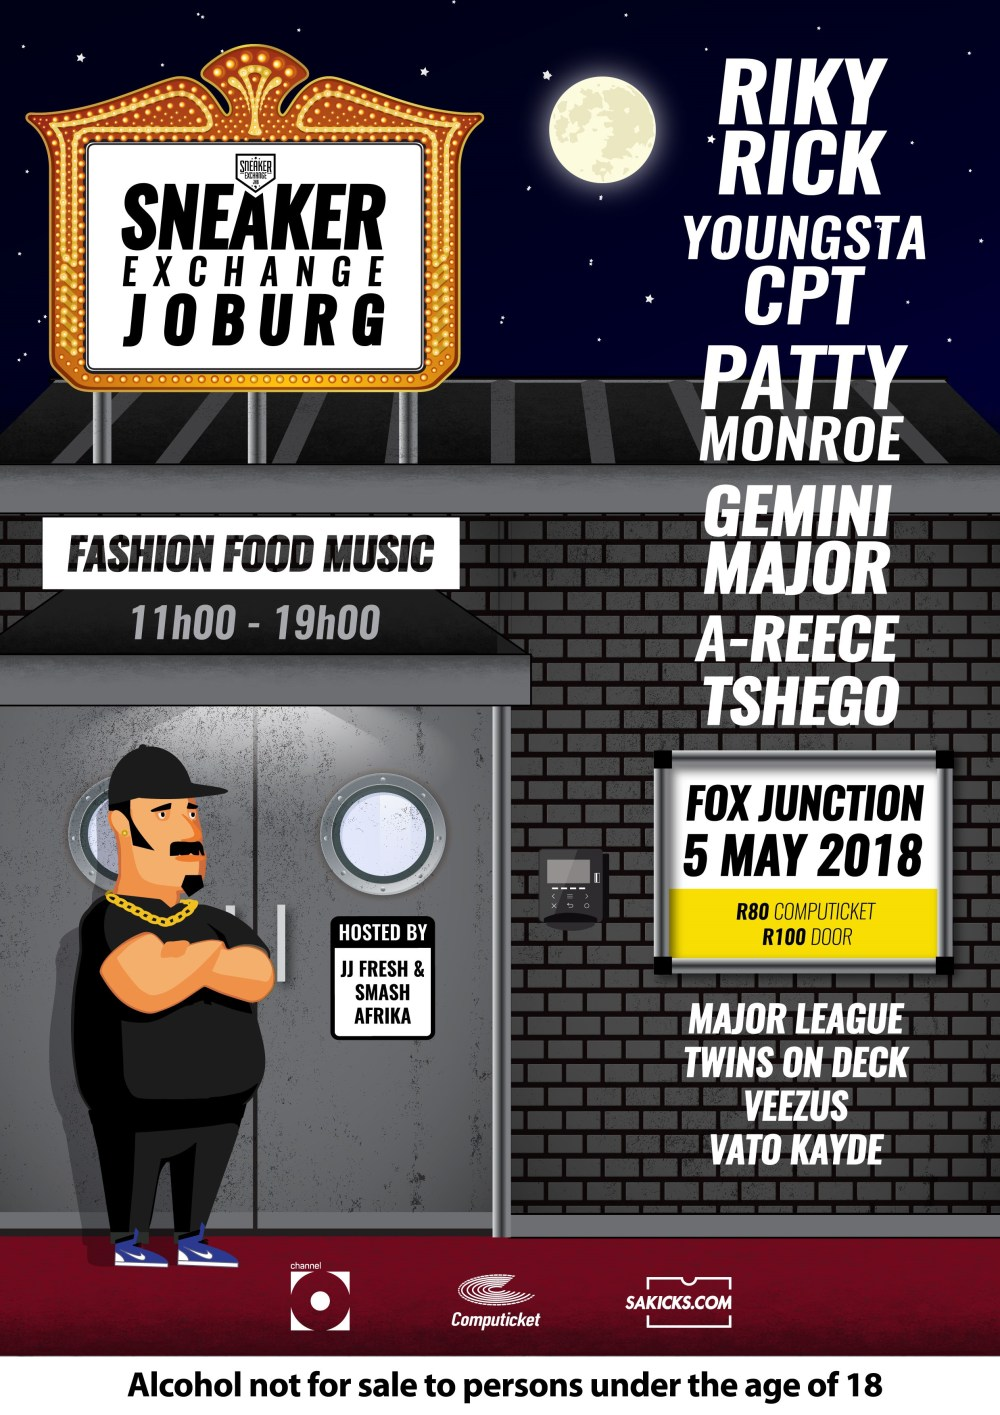 HYPE Magazine Interviews Zaid Osman For #SXCJHB Sneaker Exchange Johannesburg 5 May 2018